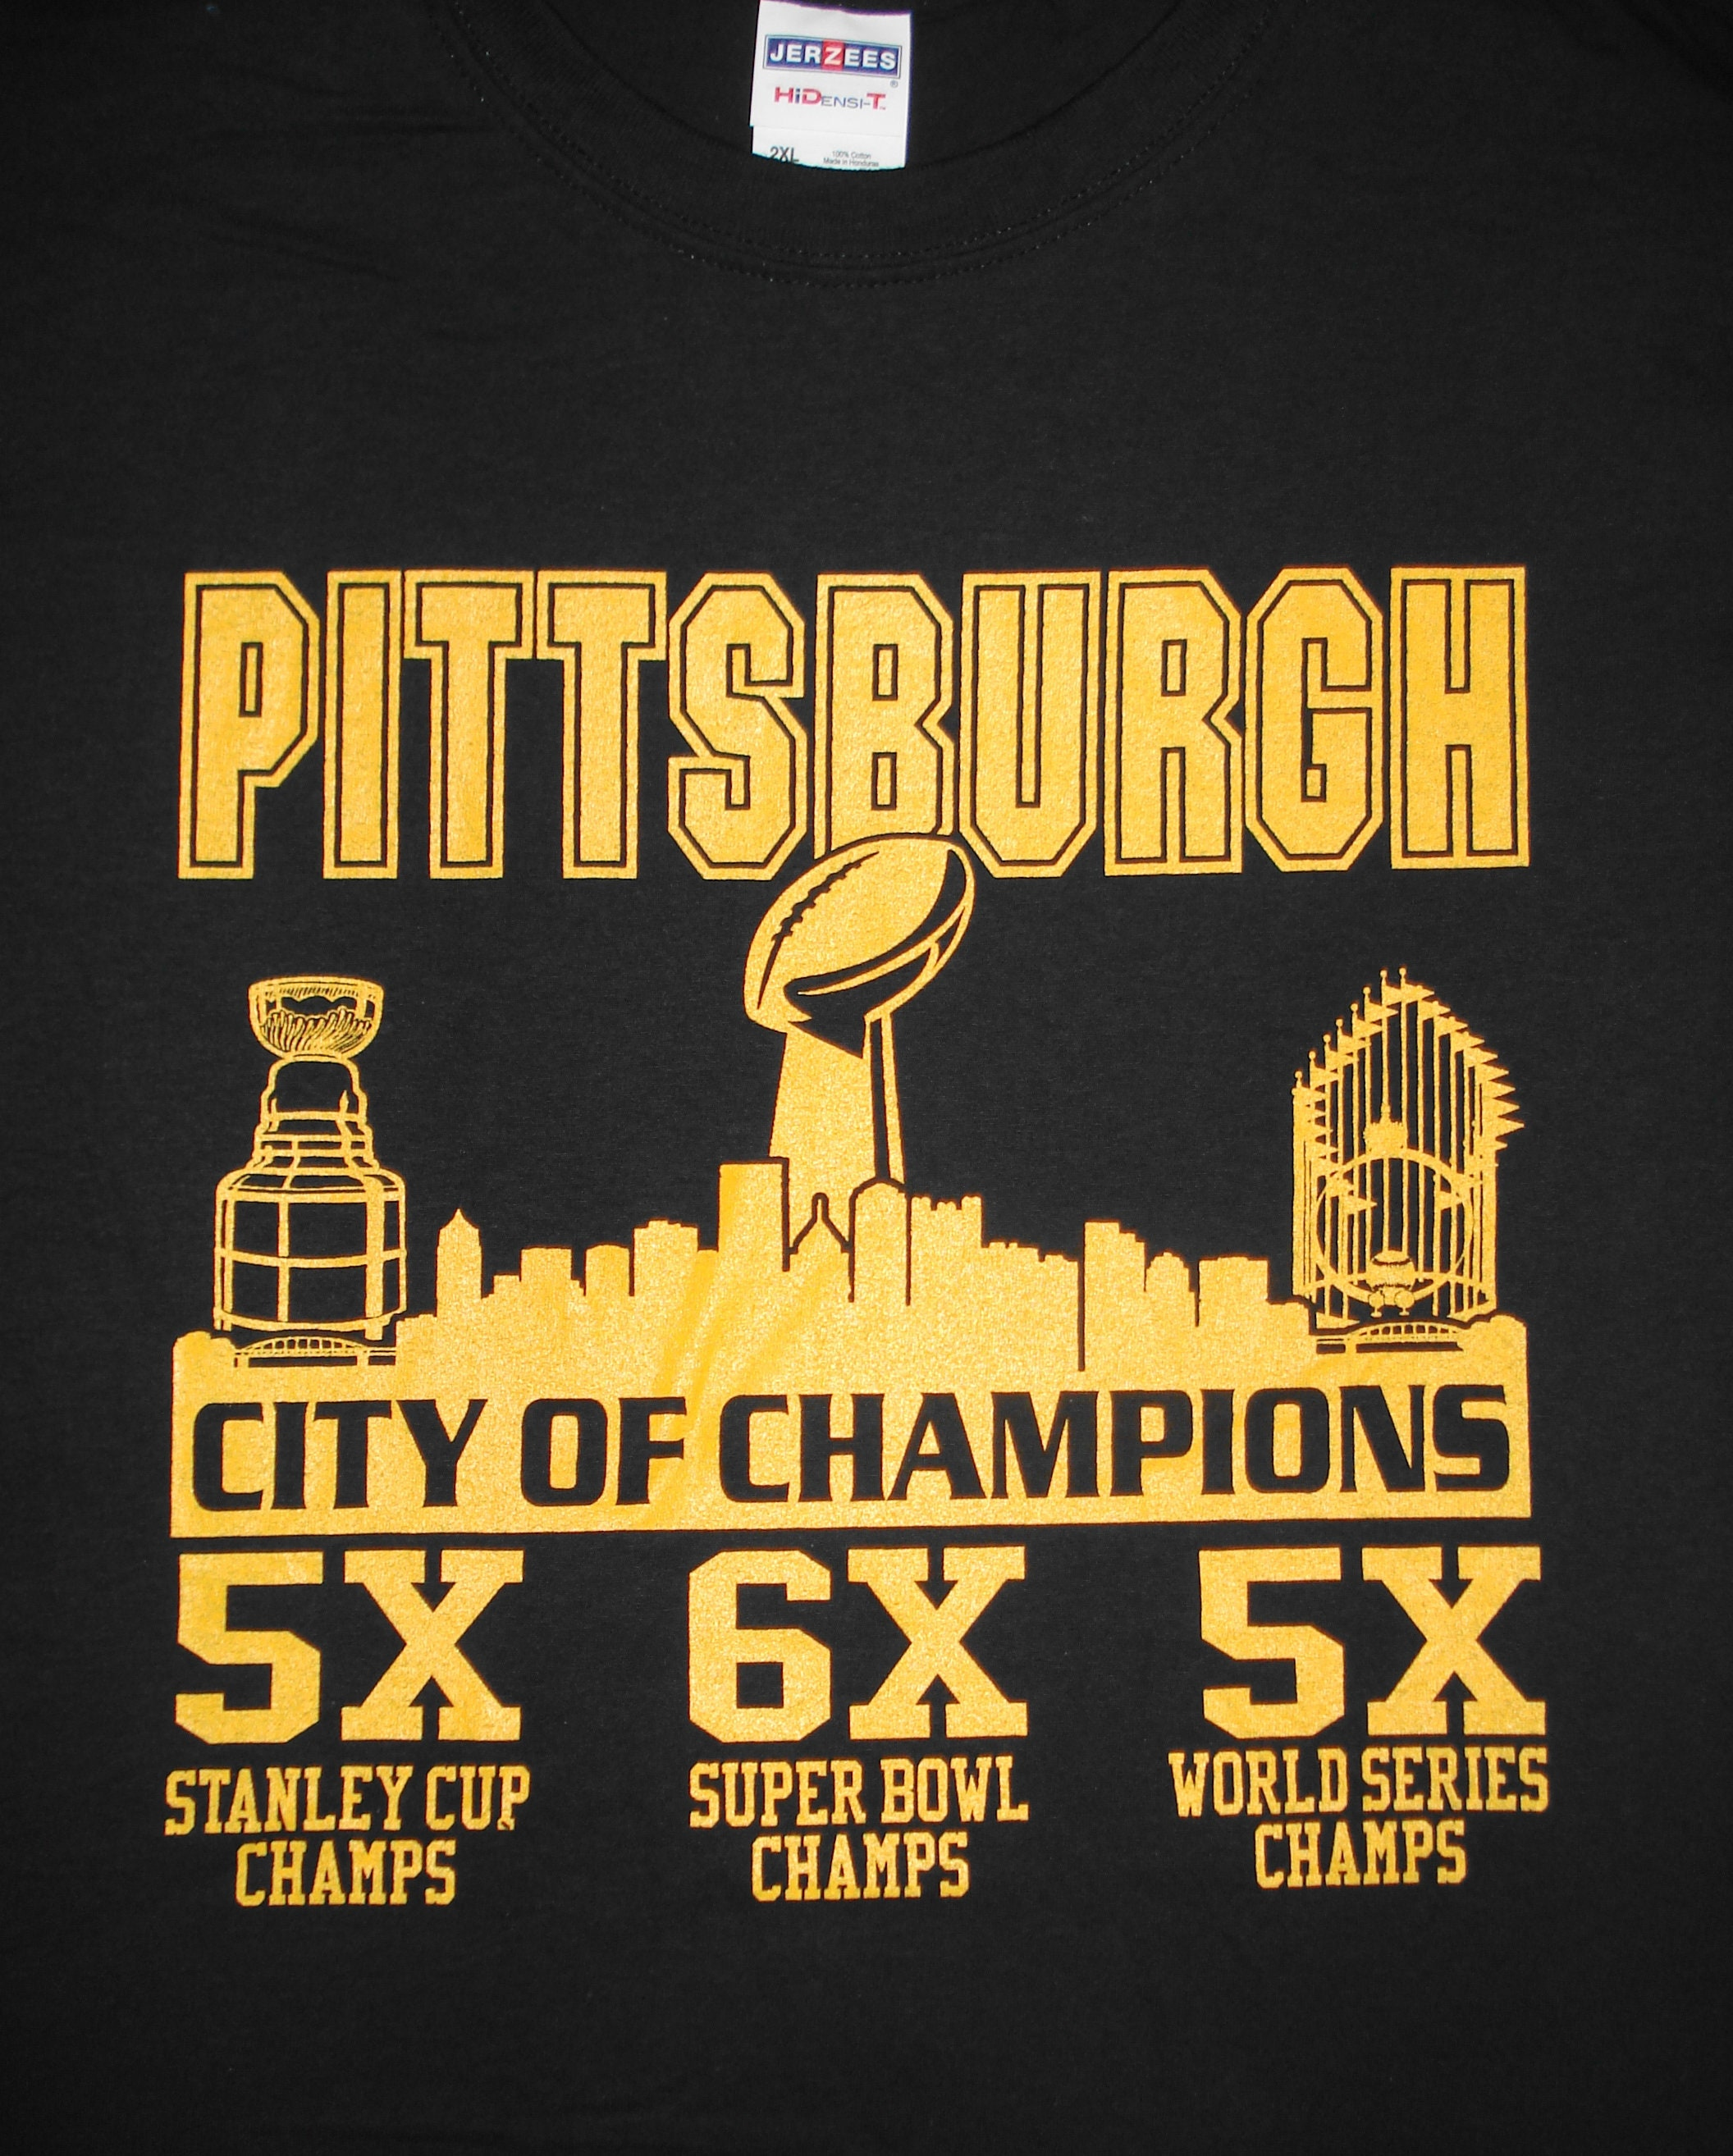 Pittsburgh Steelers Pirates Penguins T-shirt Size Adult S-6XL